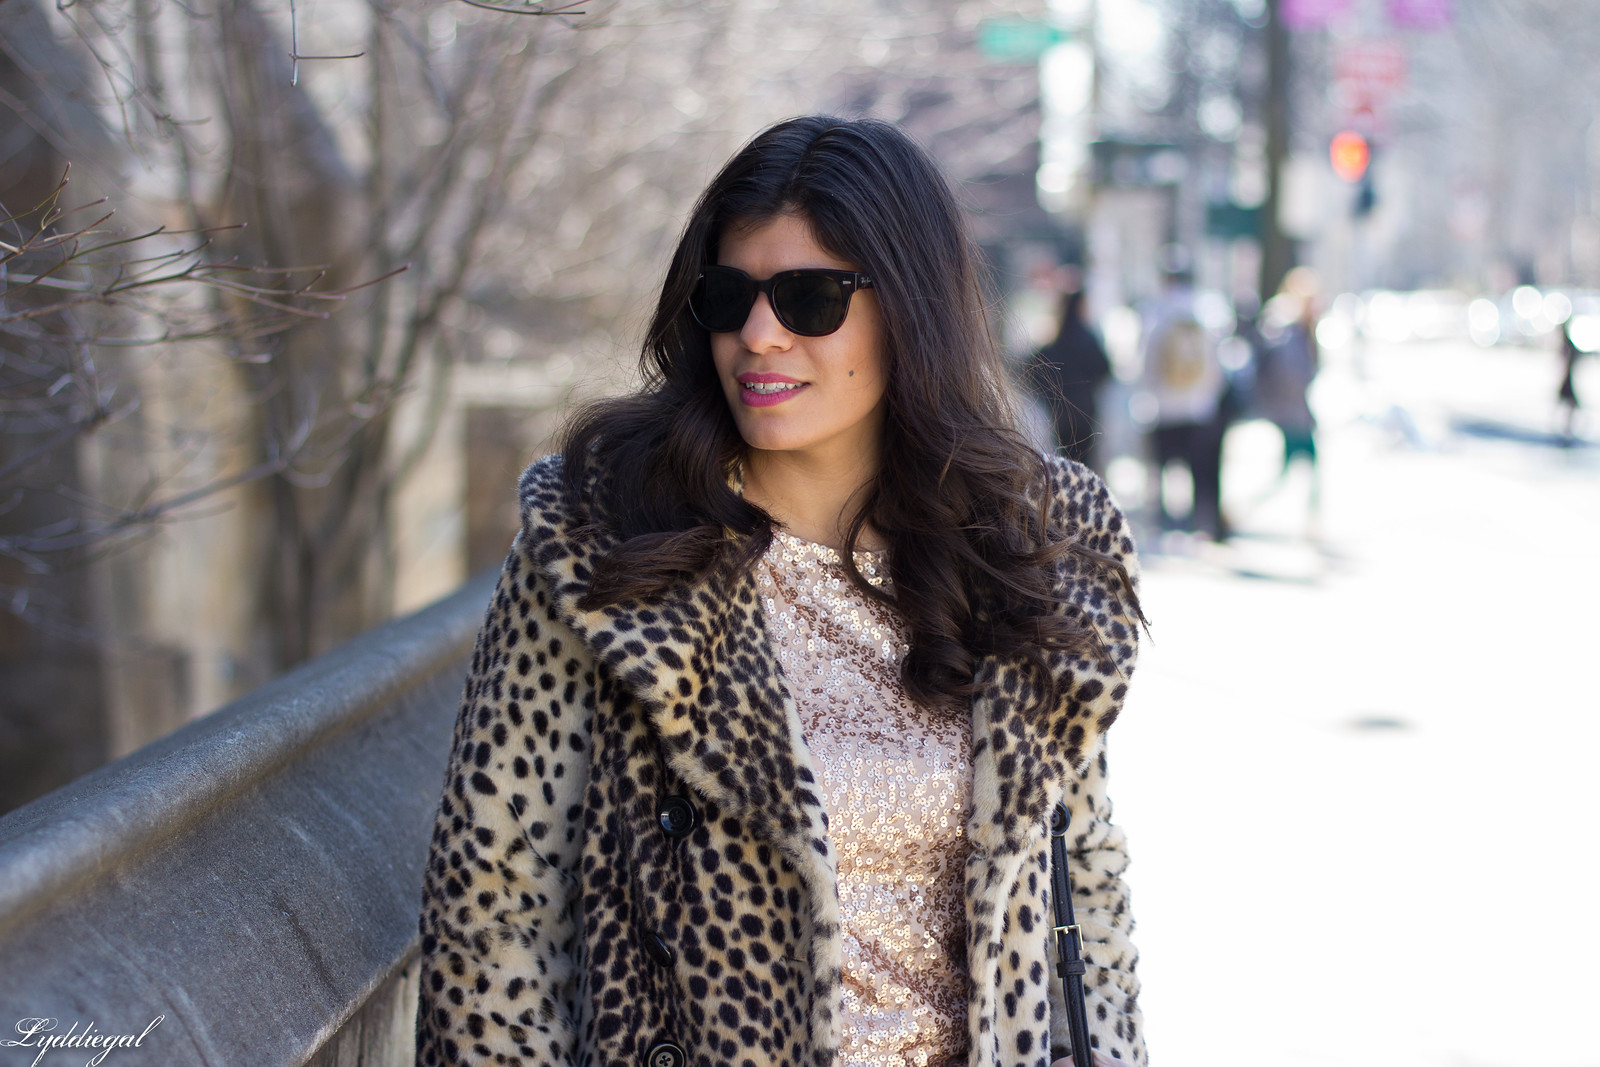 leopard fur coat, sequined top, kate spade bag.jpg